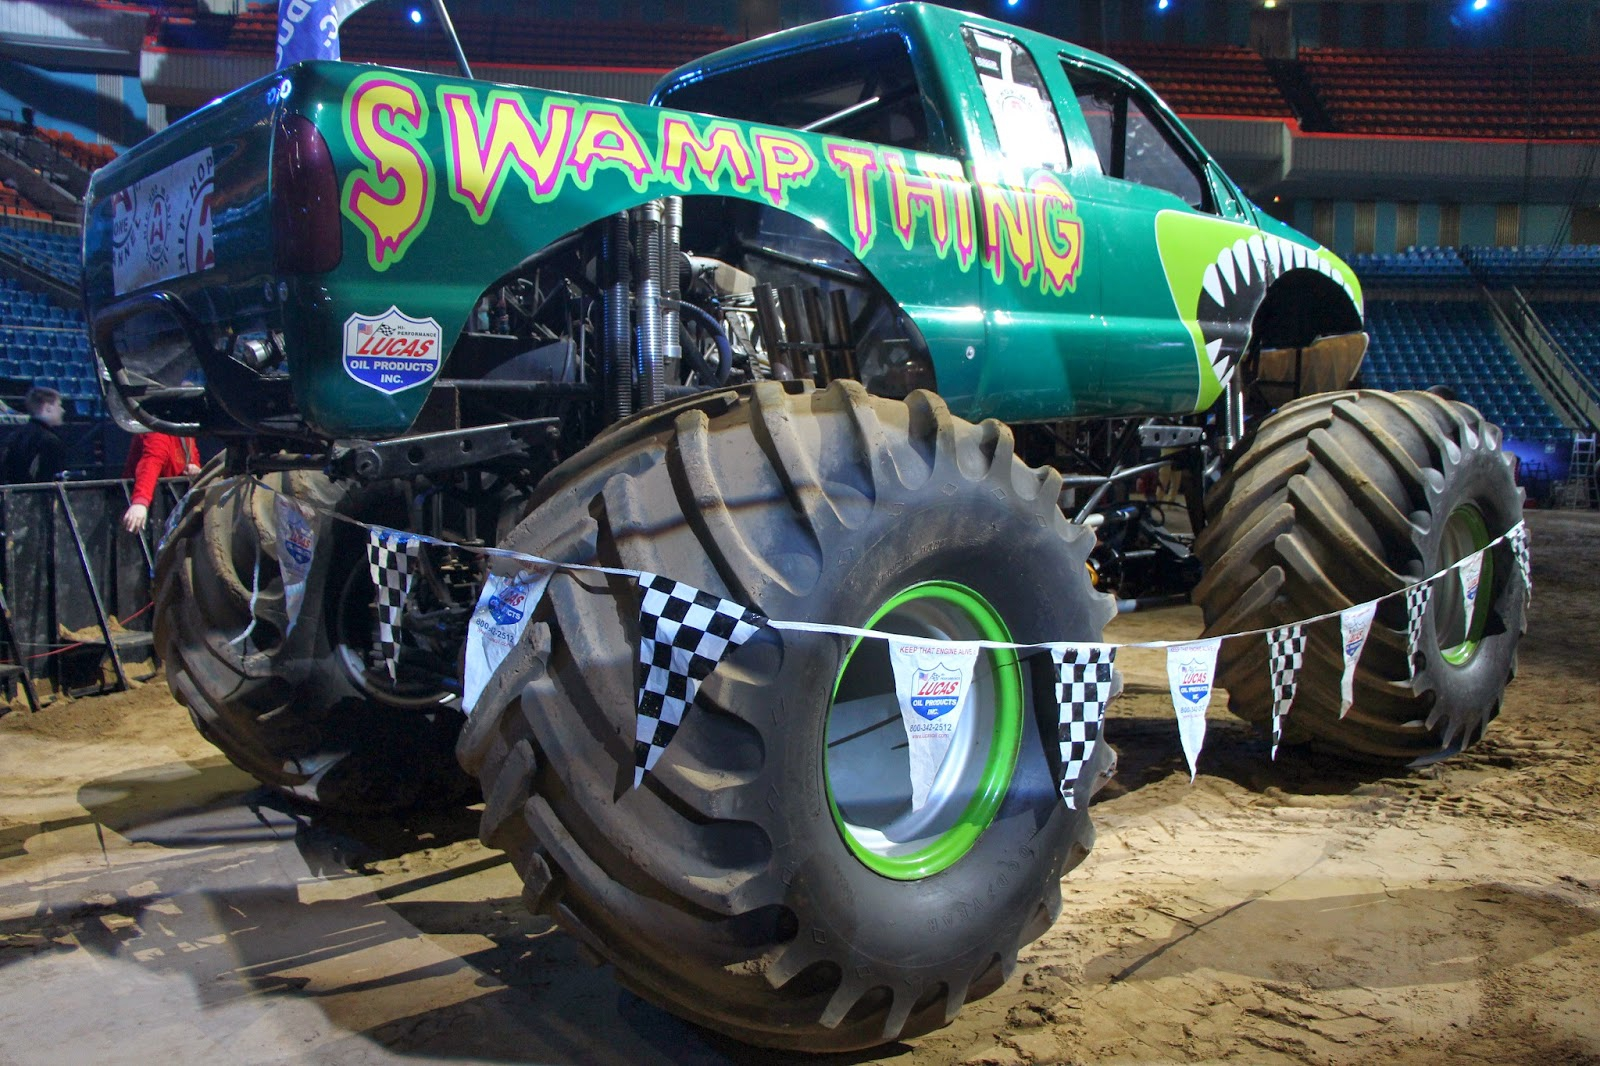 Monster Mania 2014 Гиганские машины 2014, Monster Mania, full-scale monster truck, бигфут, монстер трак